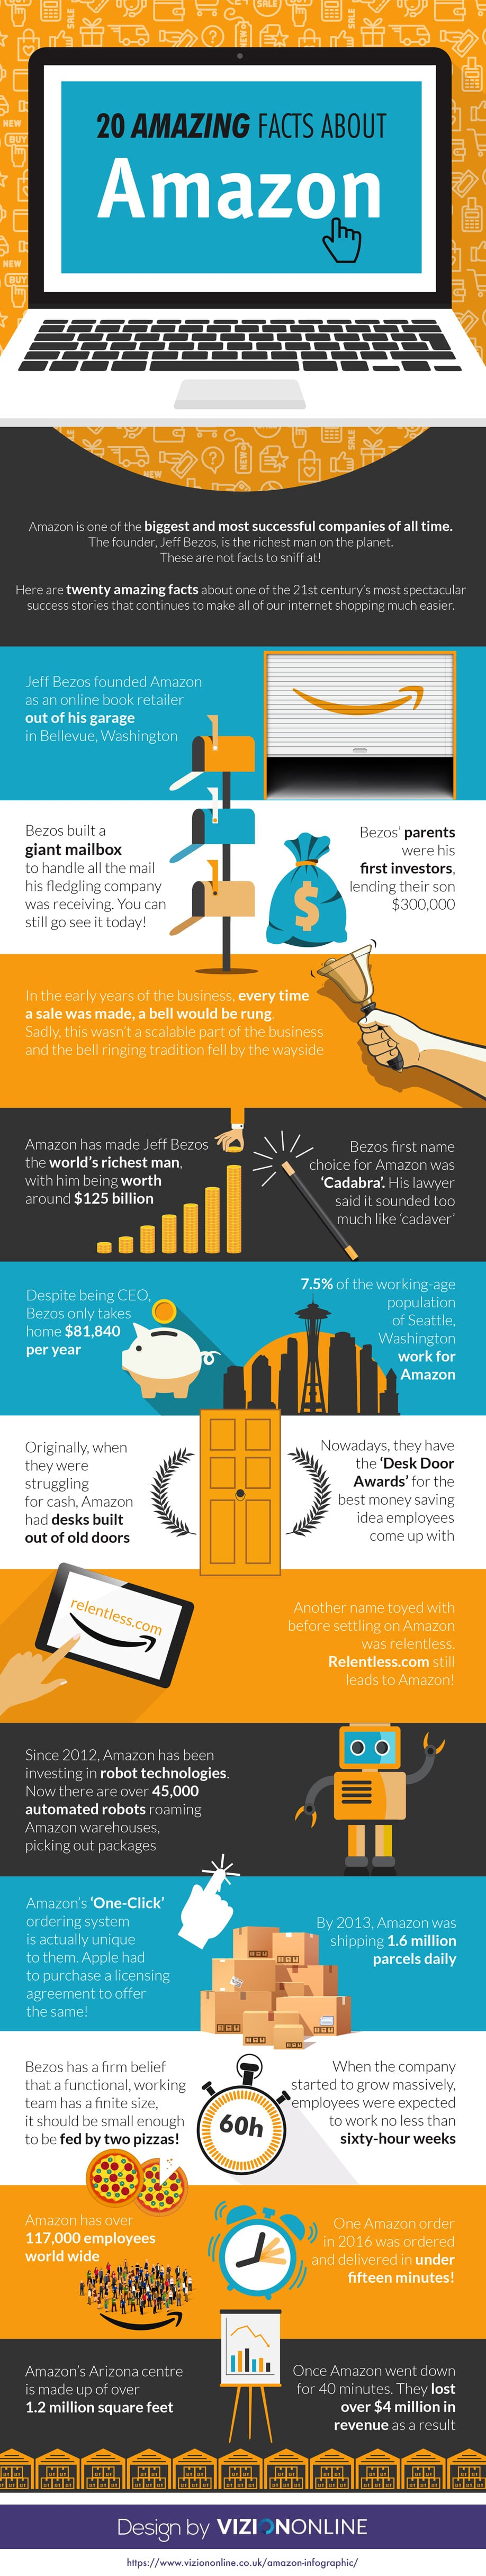 20 Amazing Facts About Amazon (Infographic)